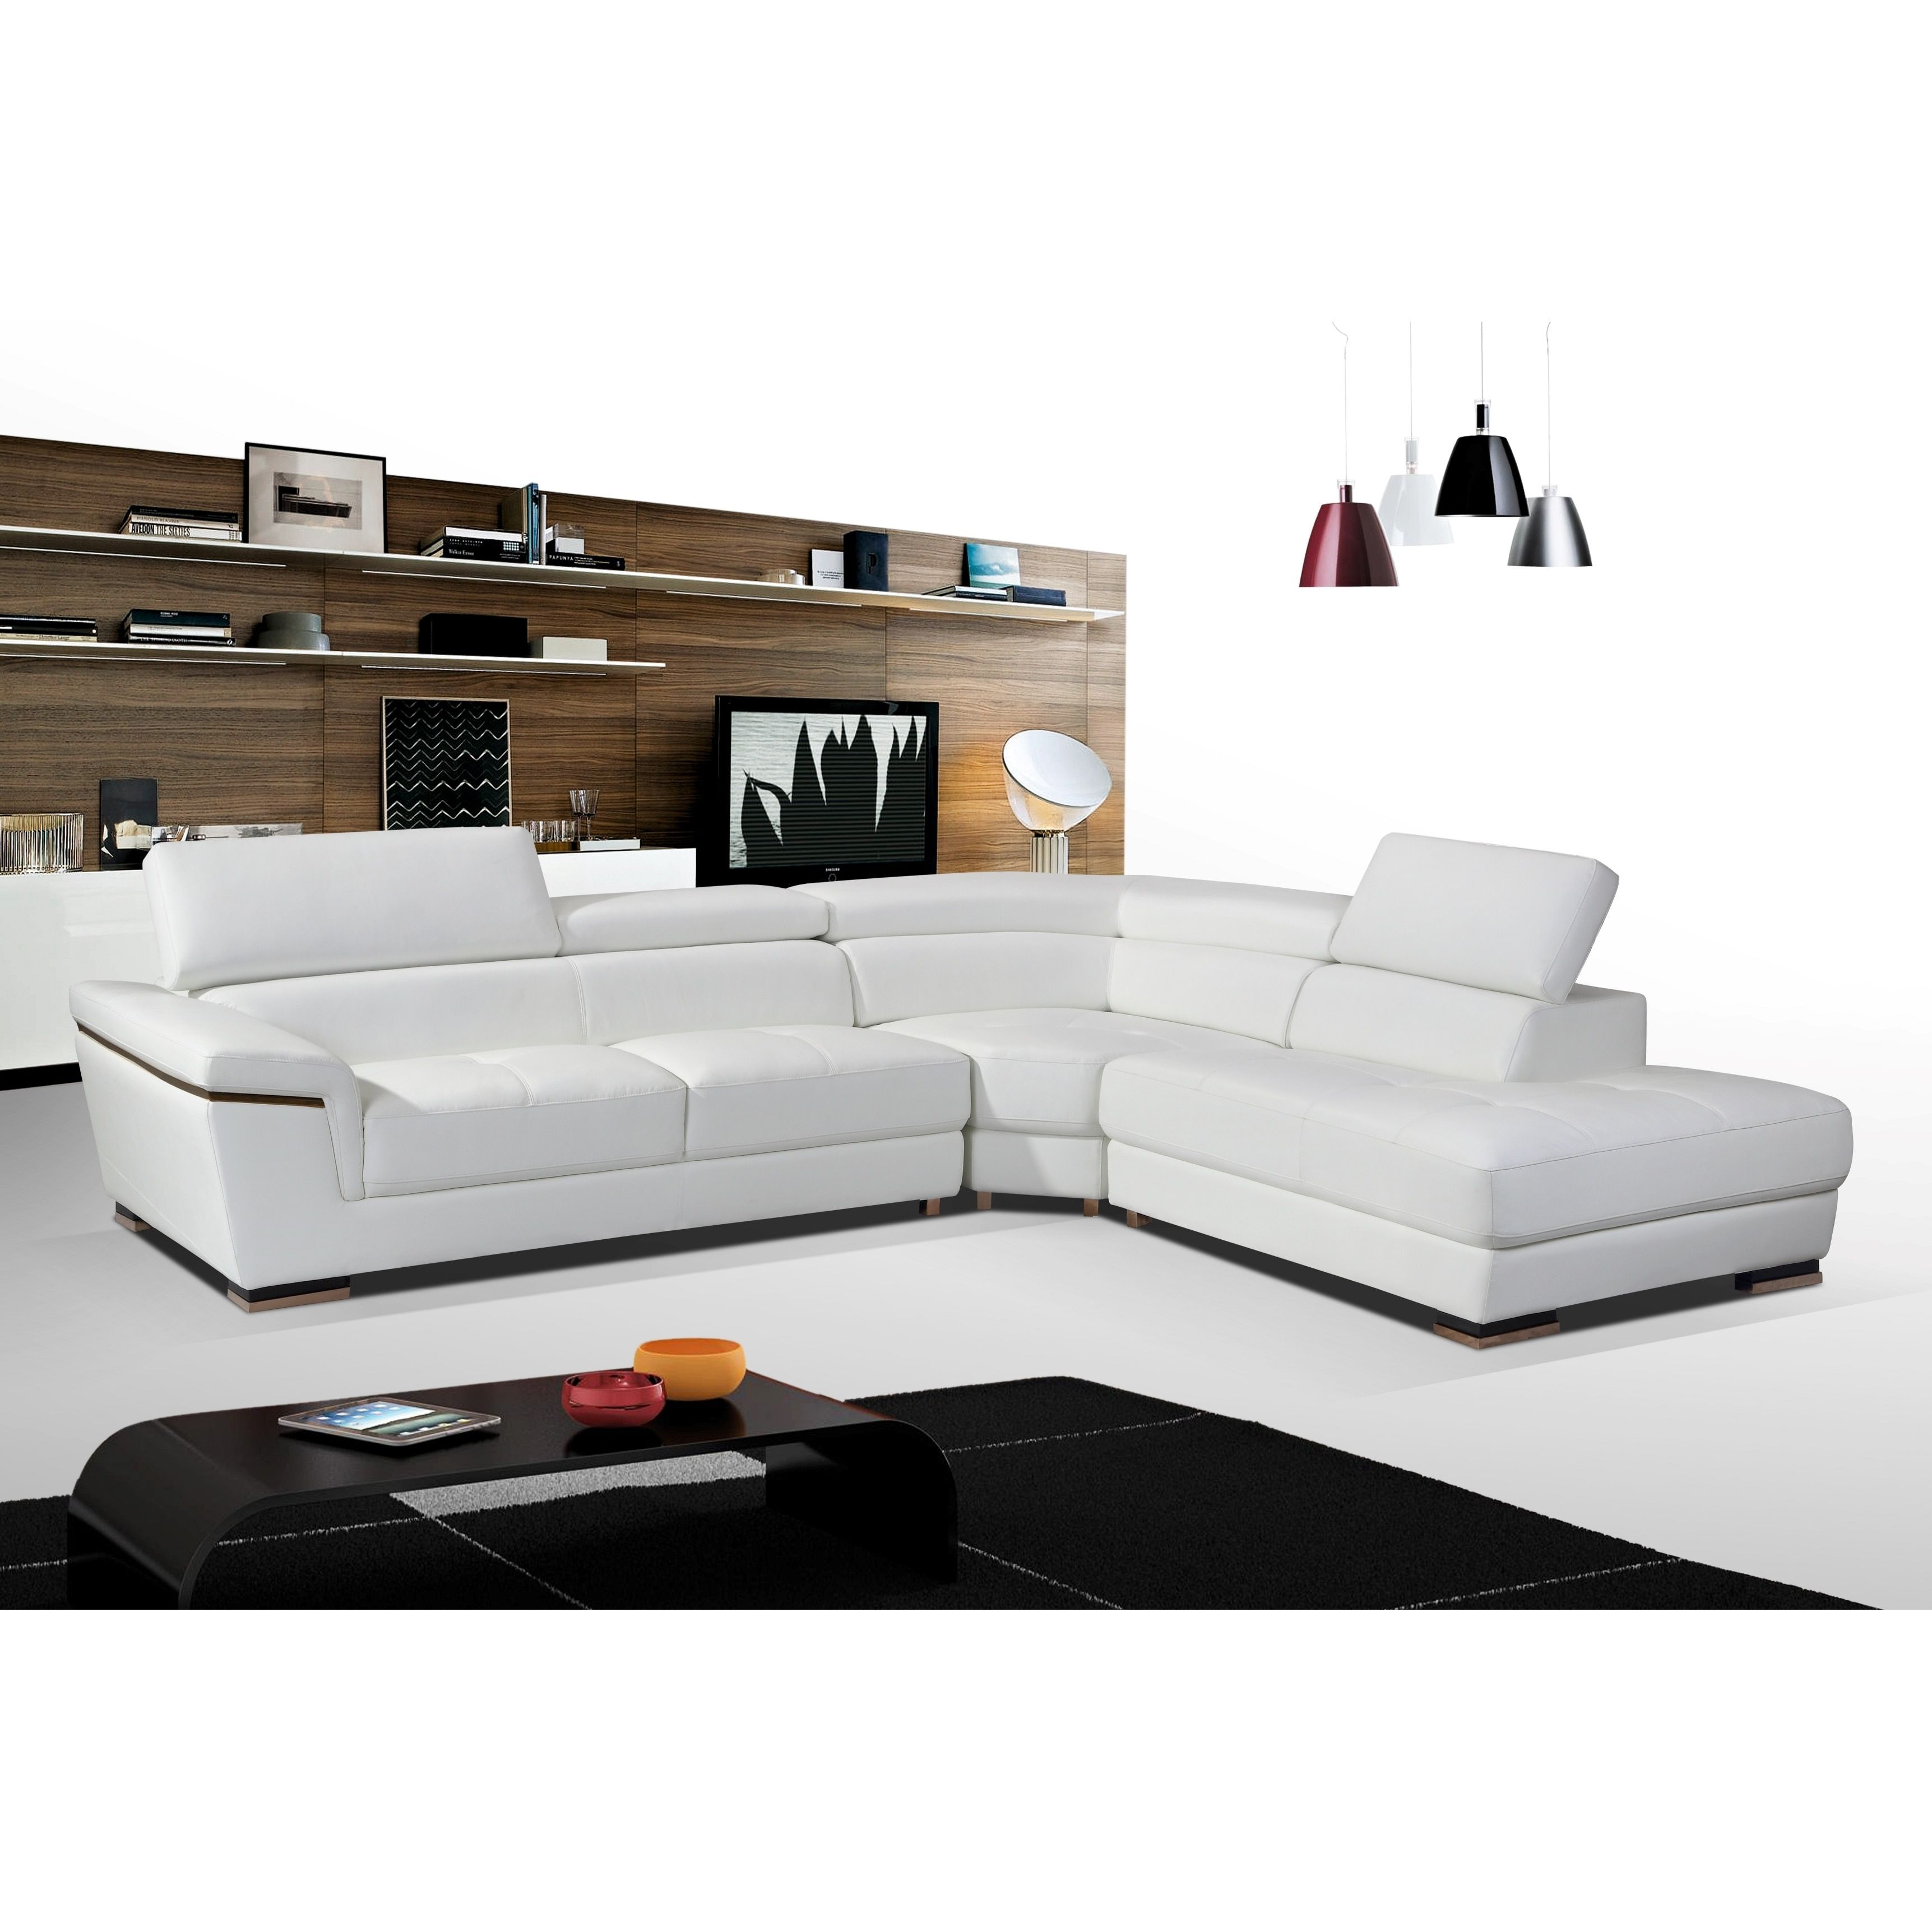 sofa sofas on for modern tosh center full small of furniture atlanta and clearance size washington photos sectional concept dreaded leather contemporary in